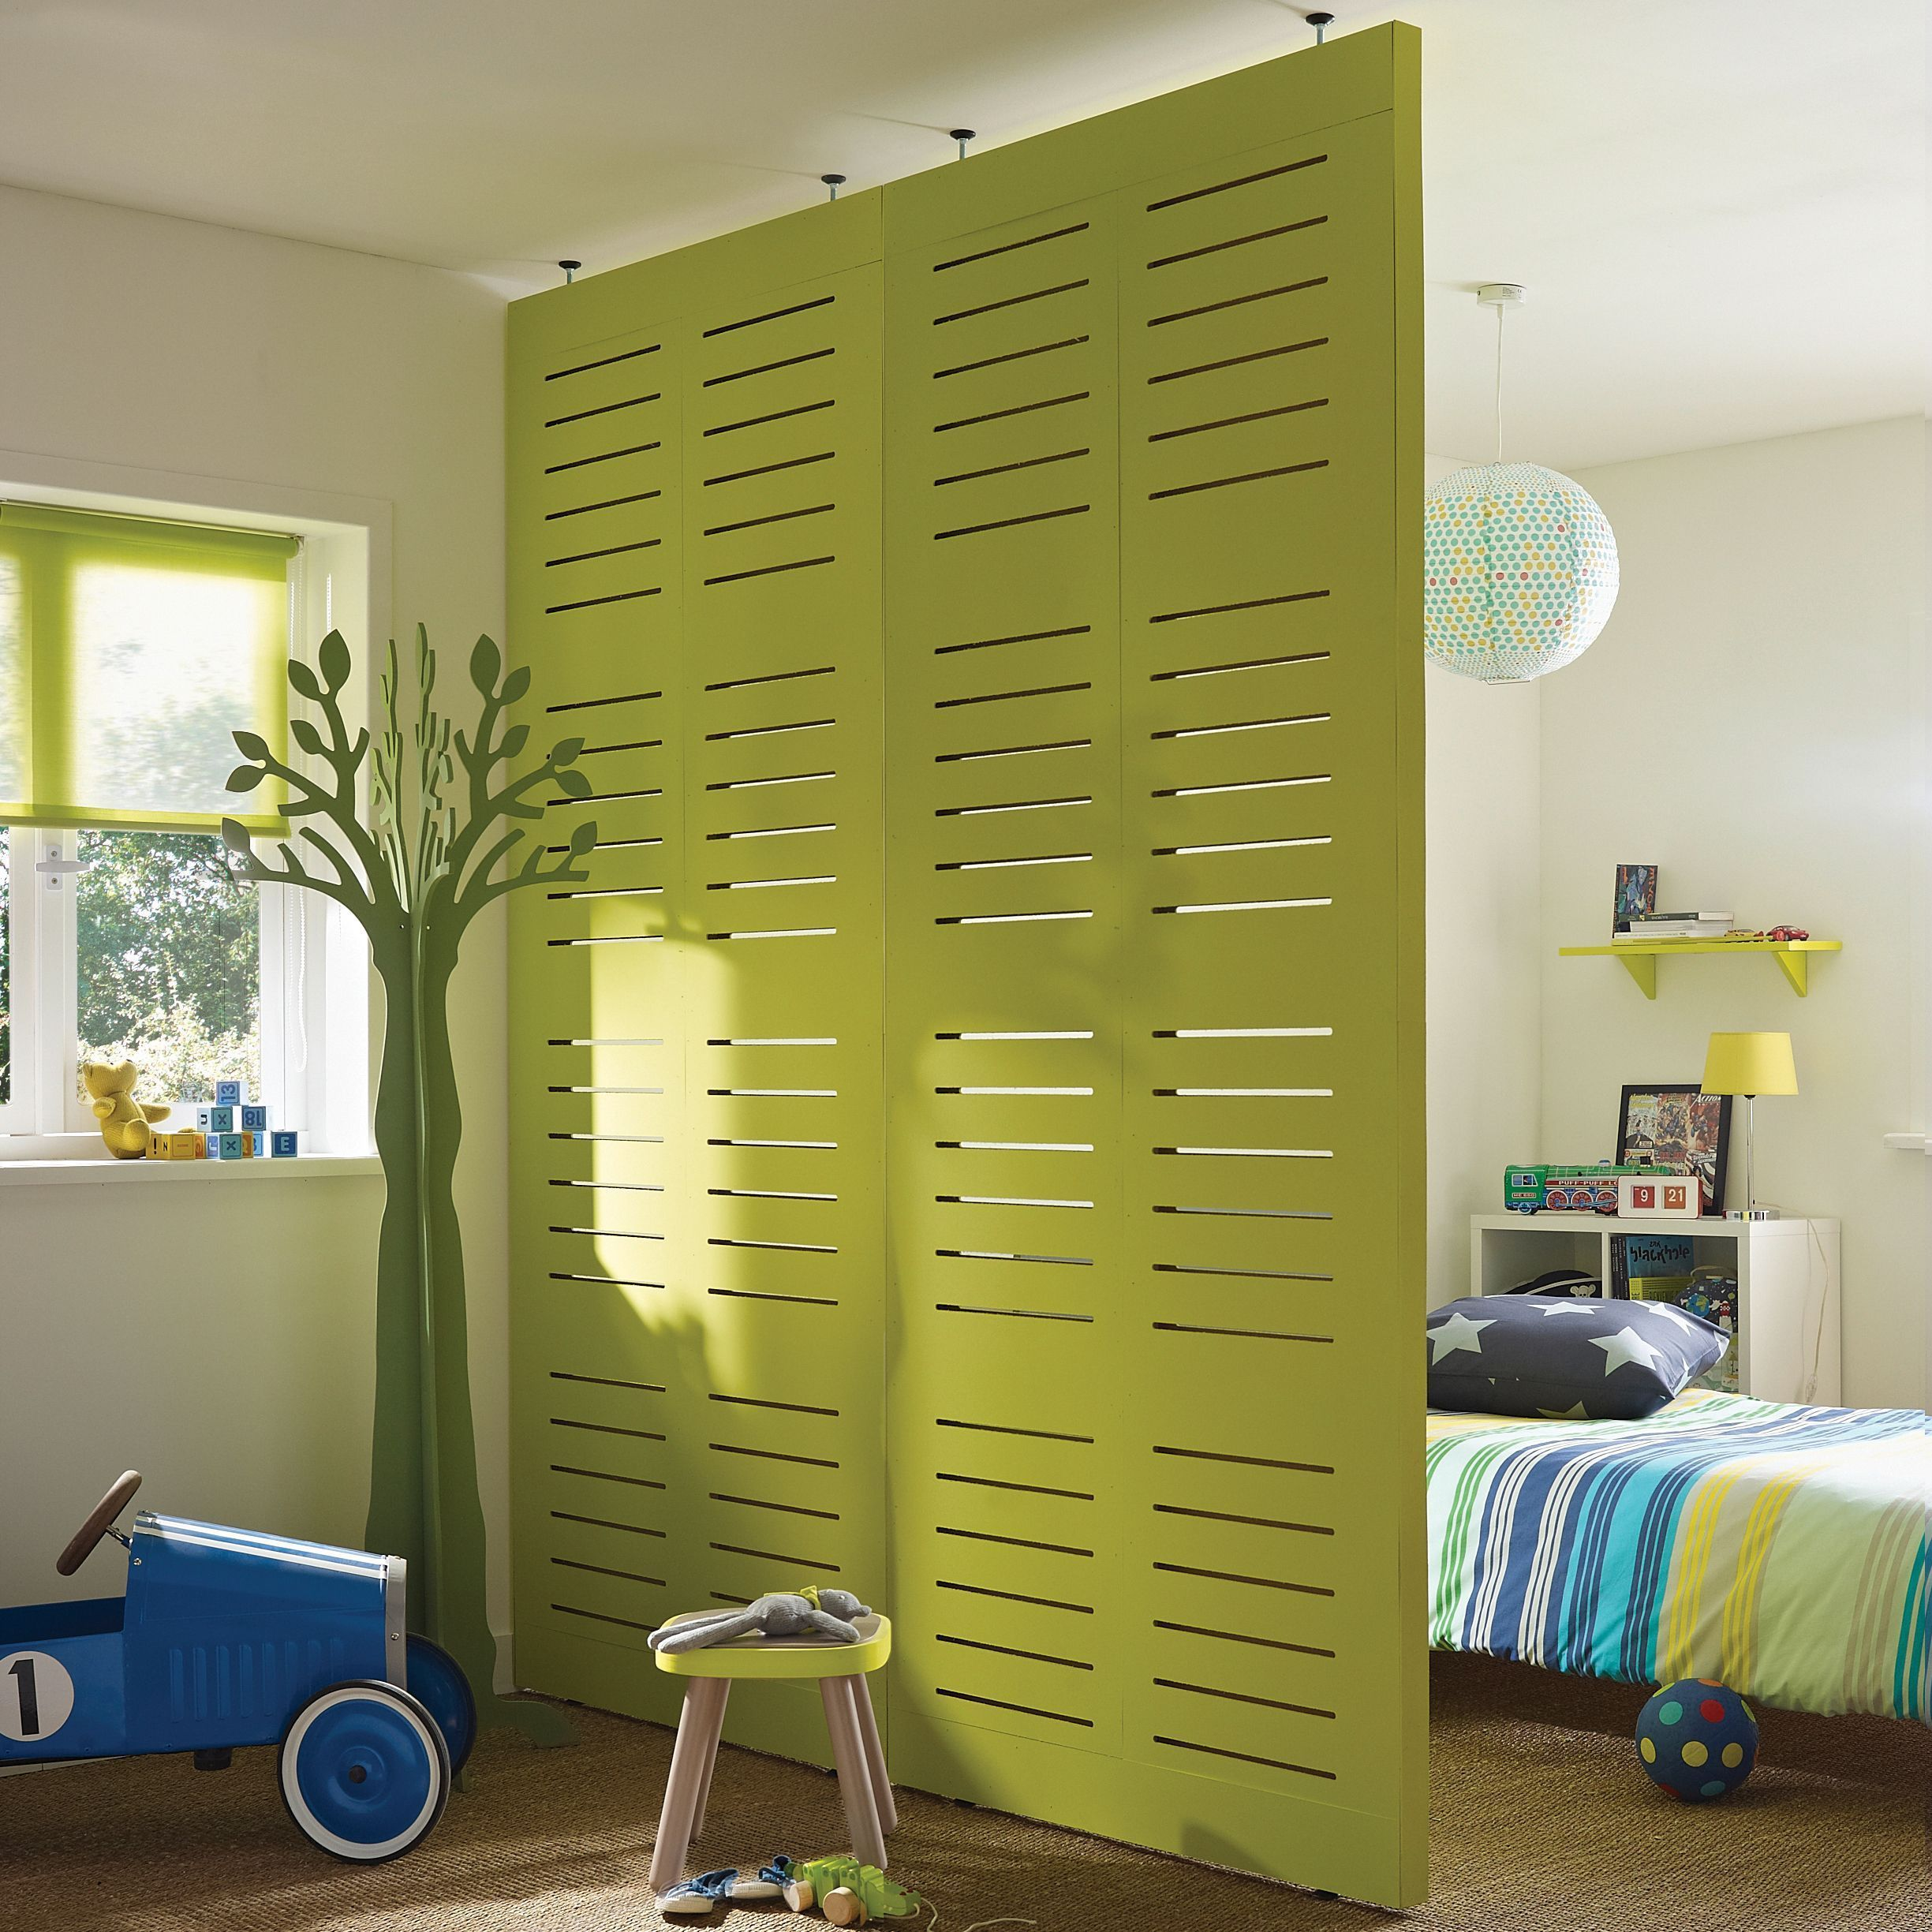 Karalis Room Divider - B&Q for all your home and garden supplies